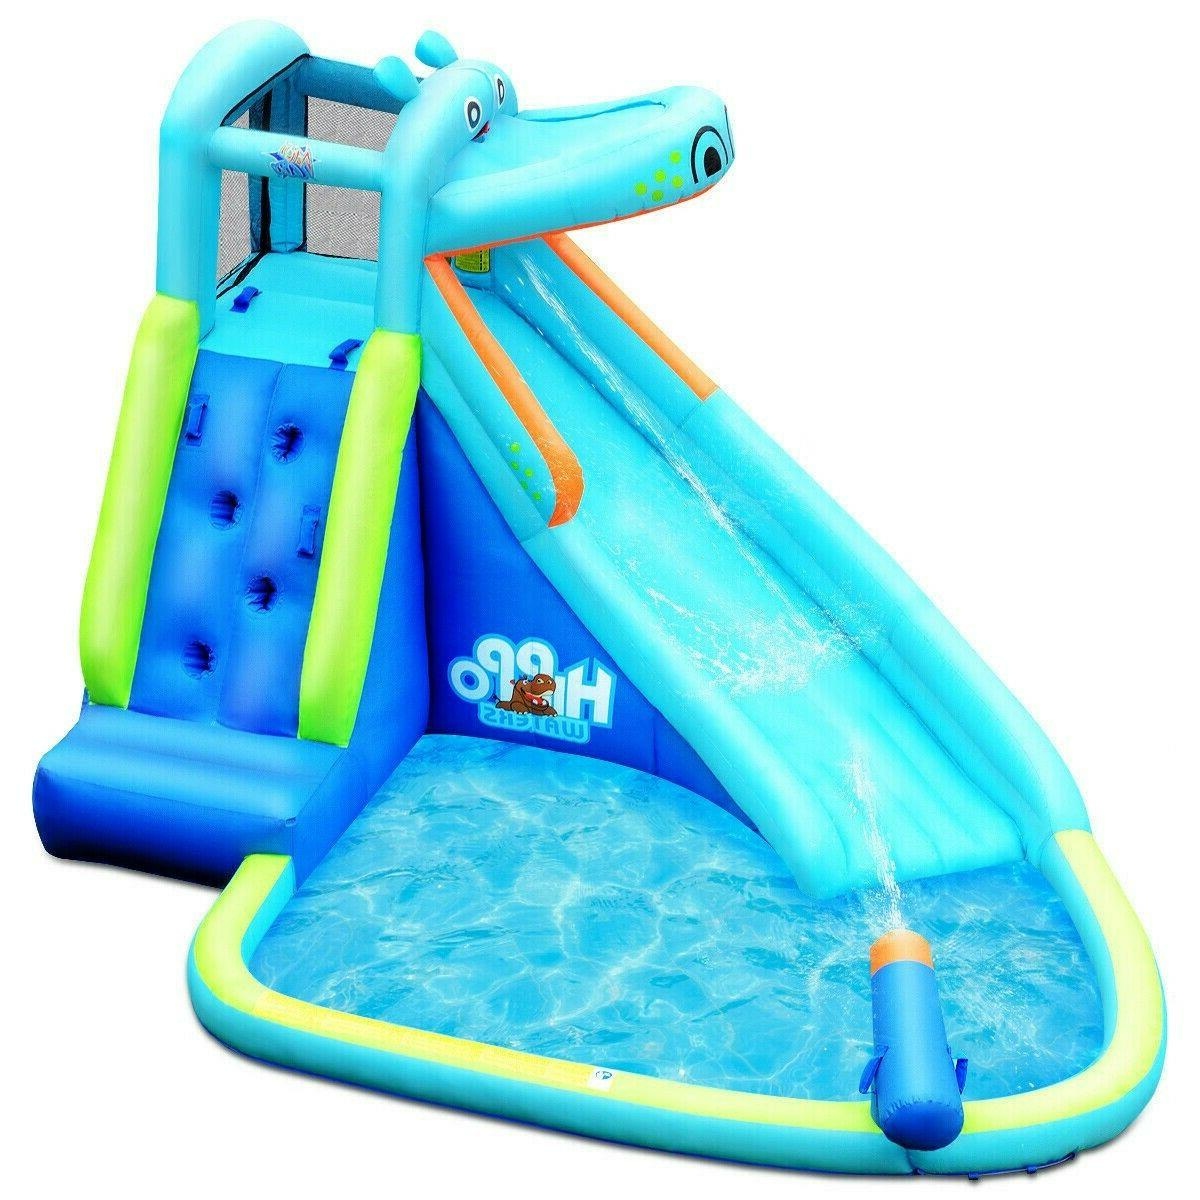 Inflatable Bounce House Kids Big Water Slide Hippo Bouncer C